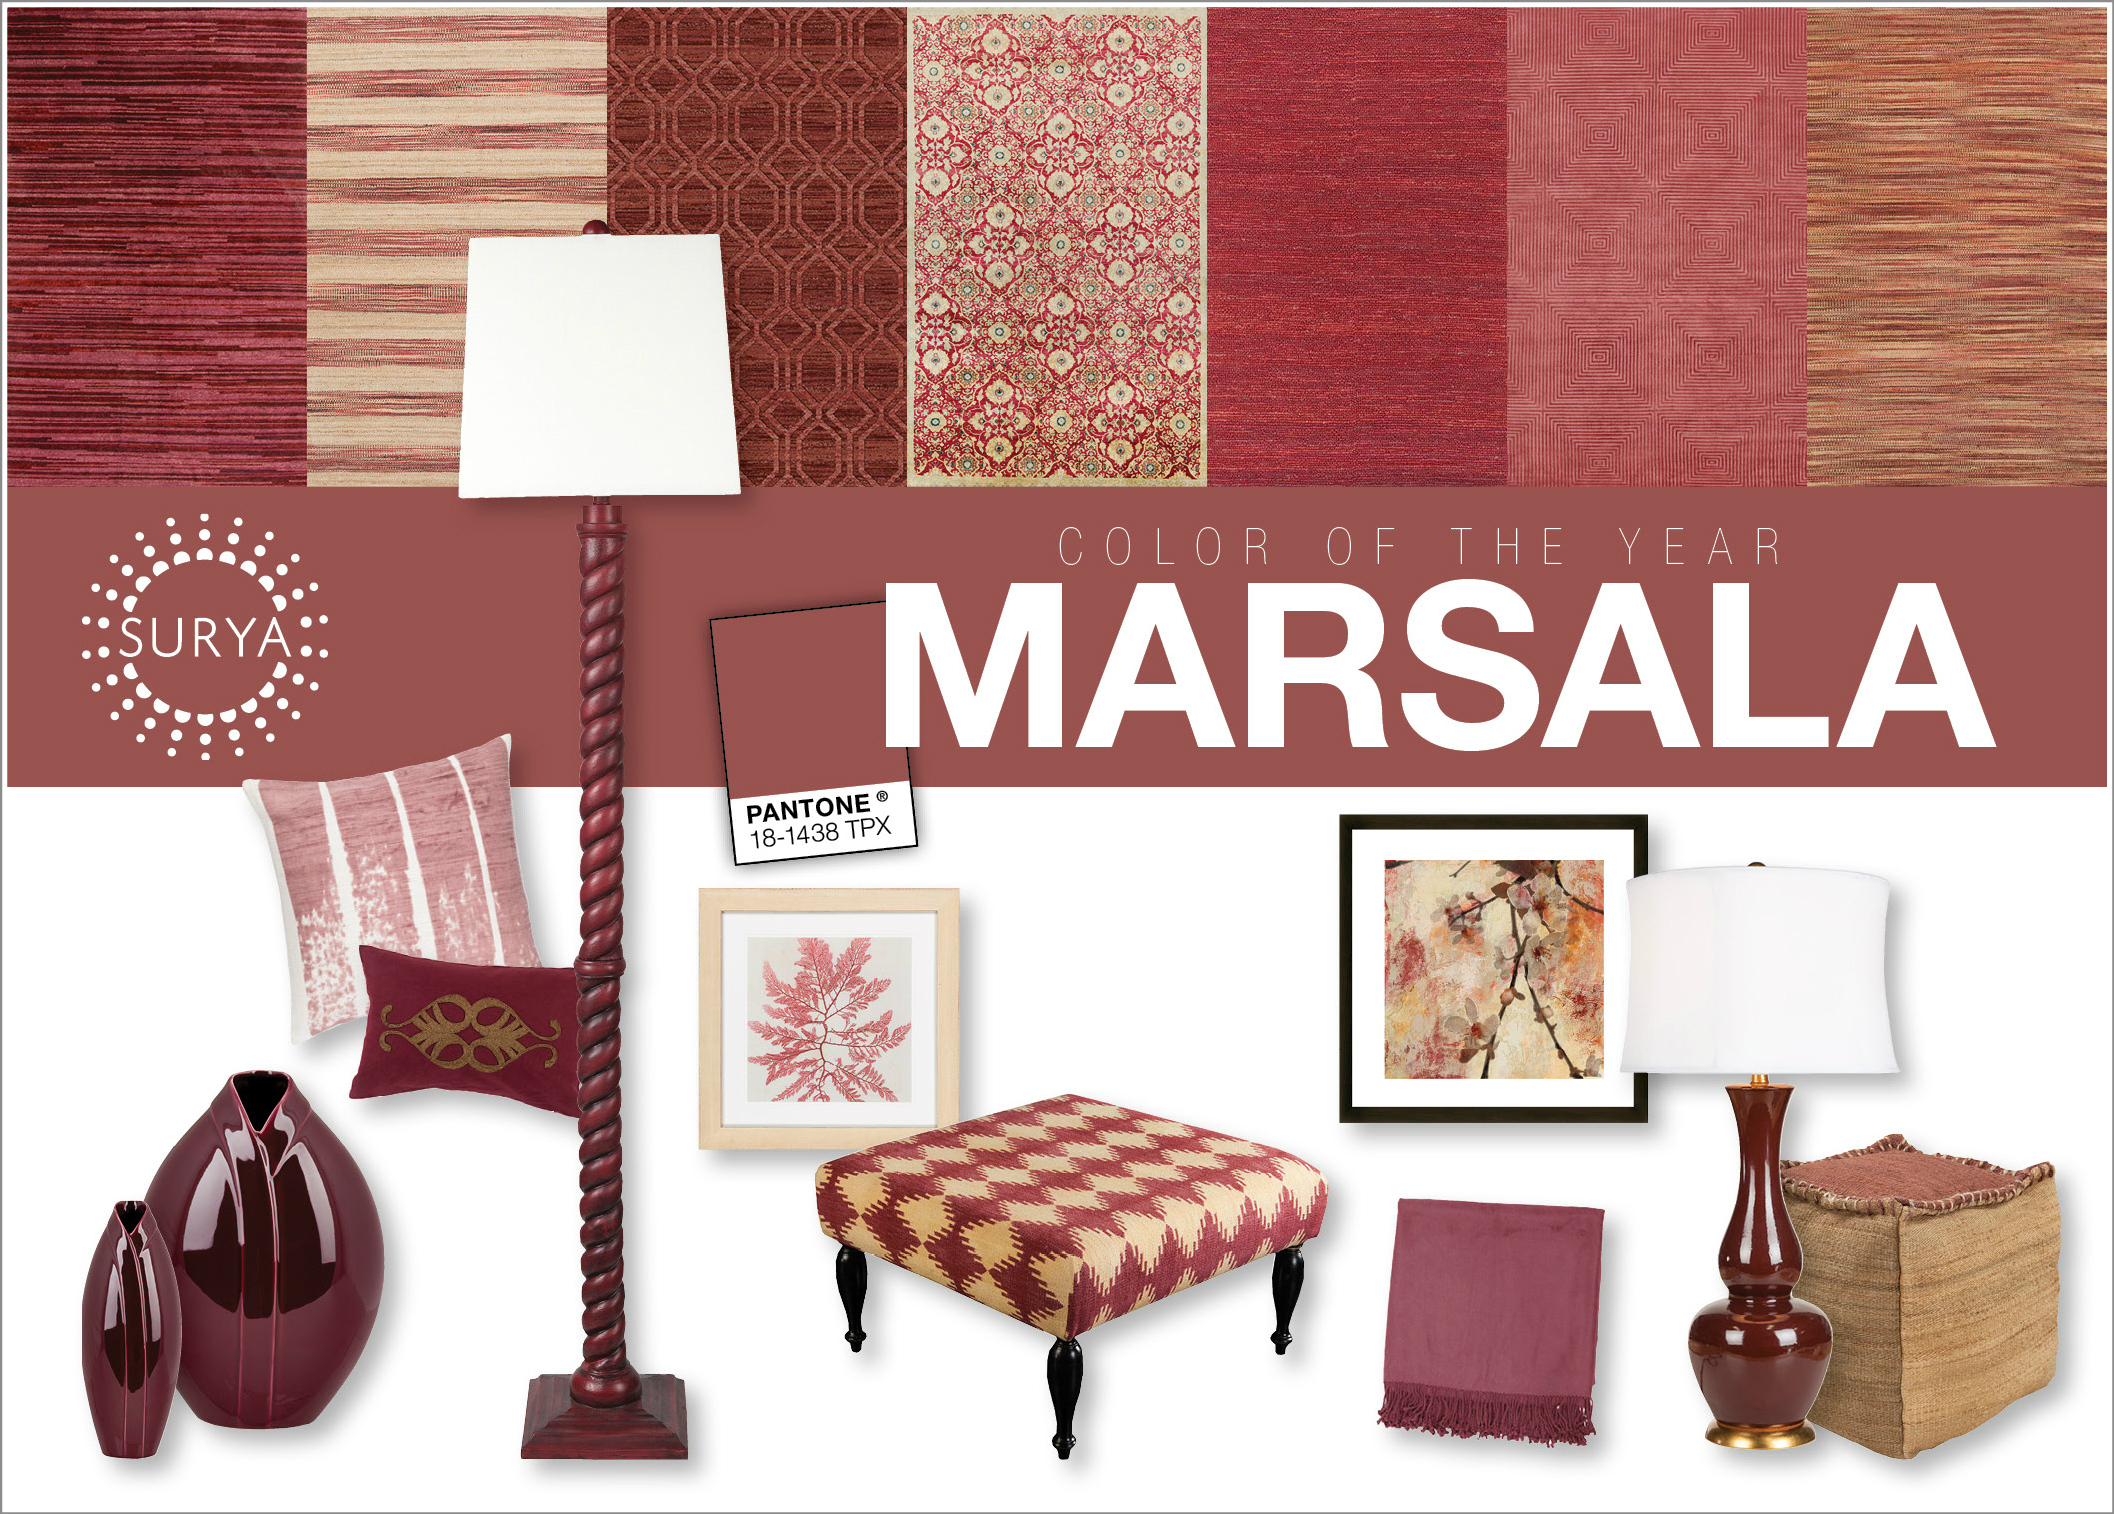 Surya To Spotlight All Things Marsala At Winter Markets 12 05 14